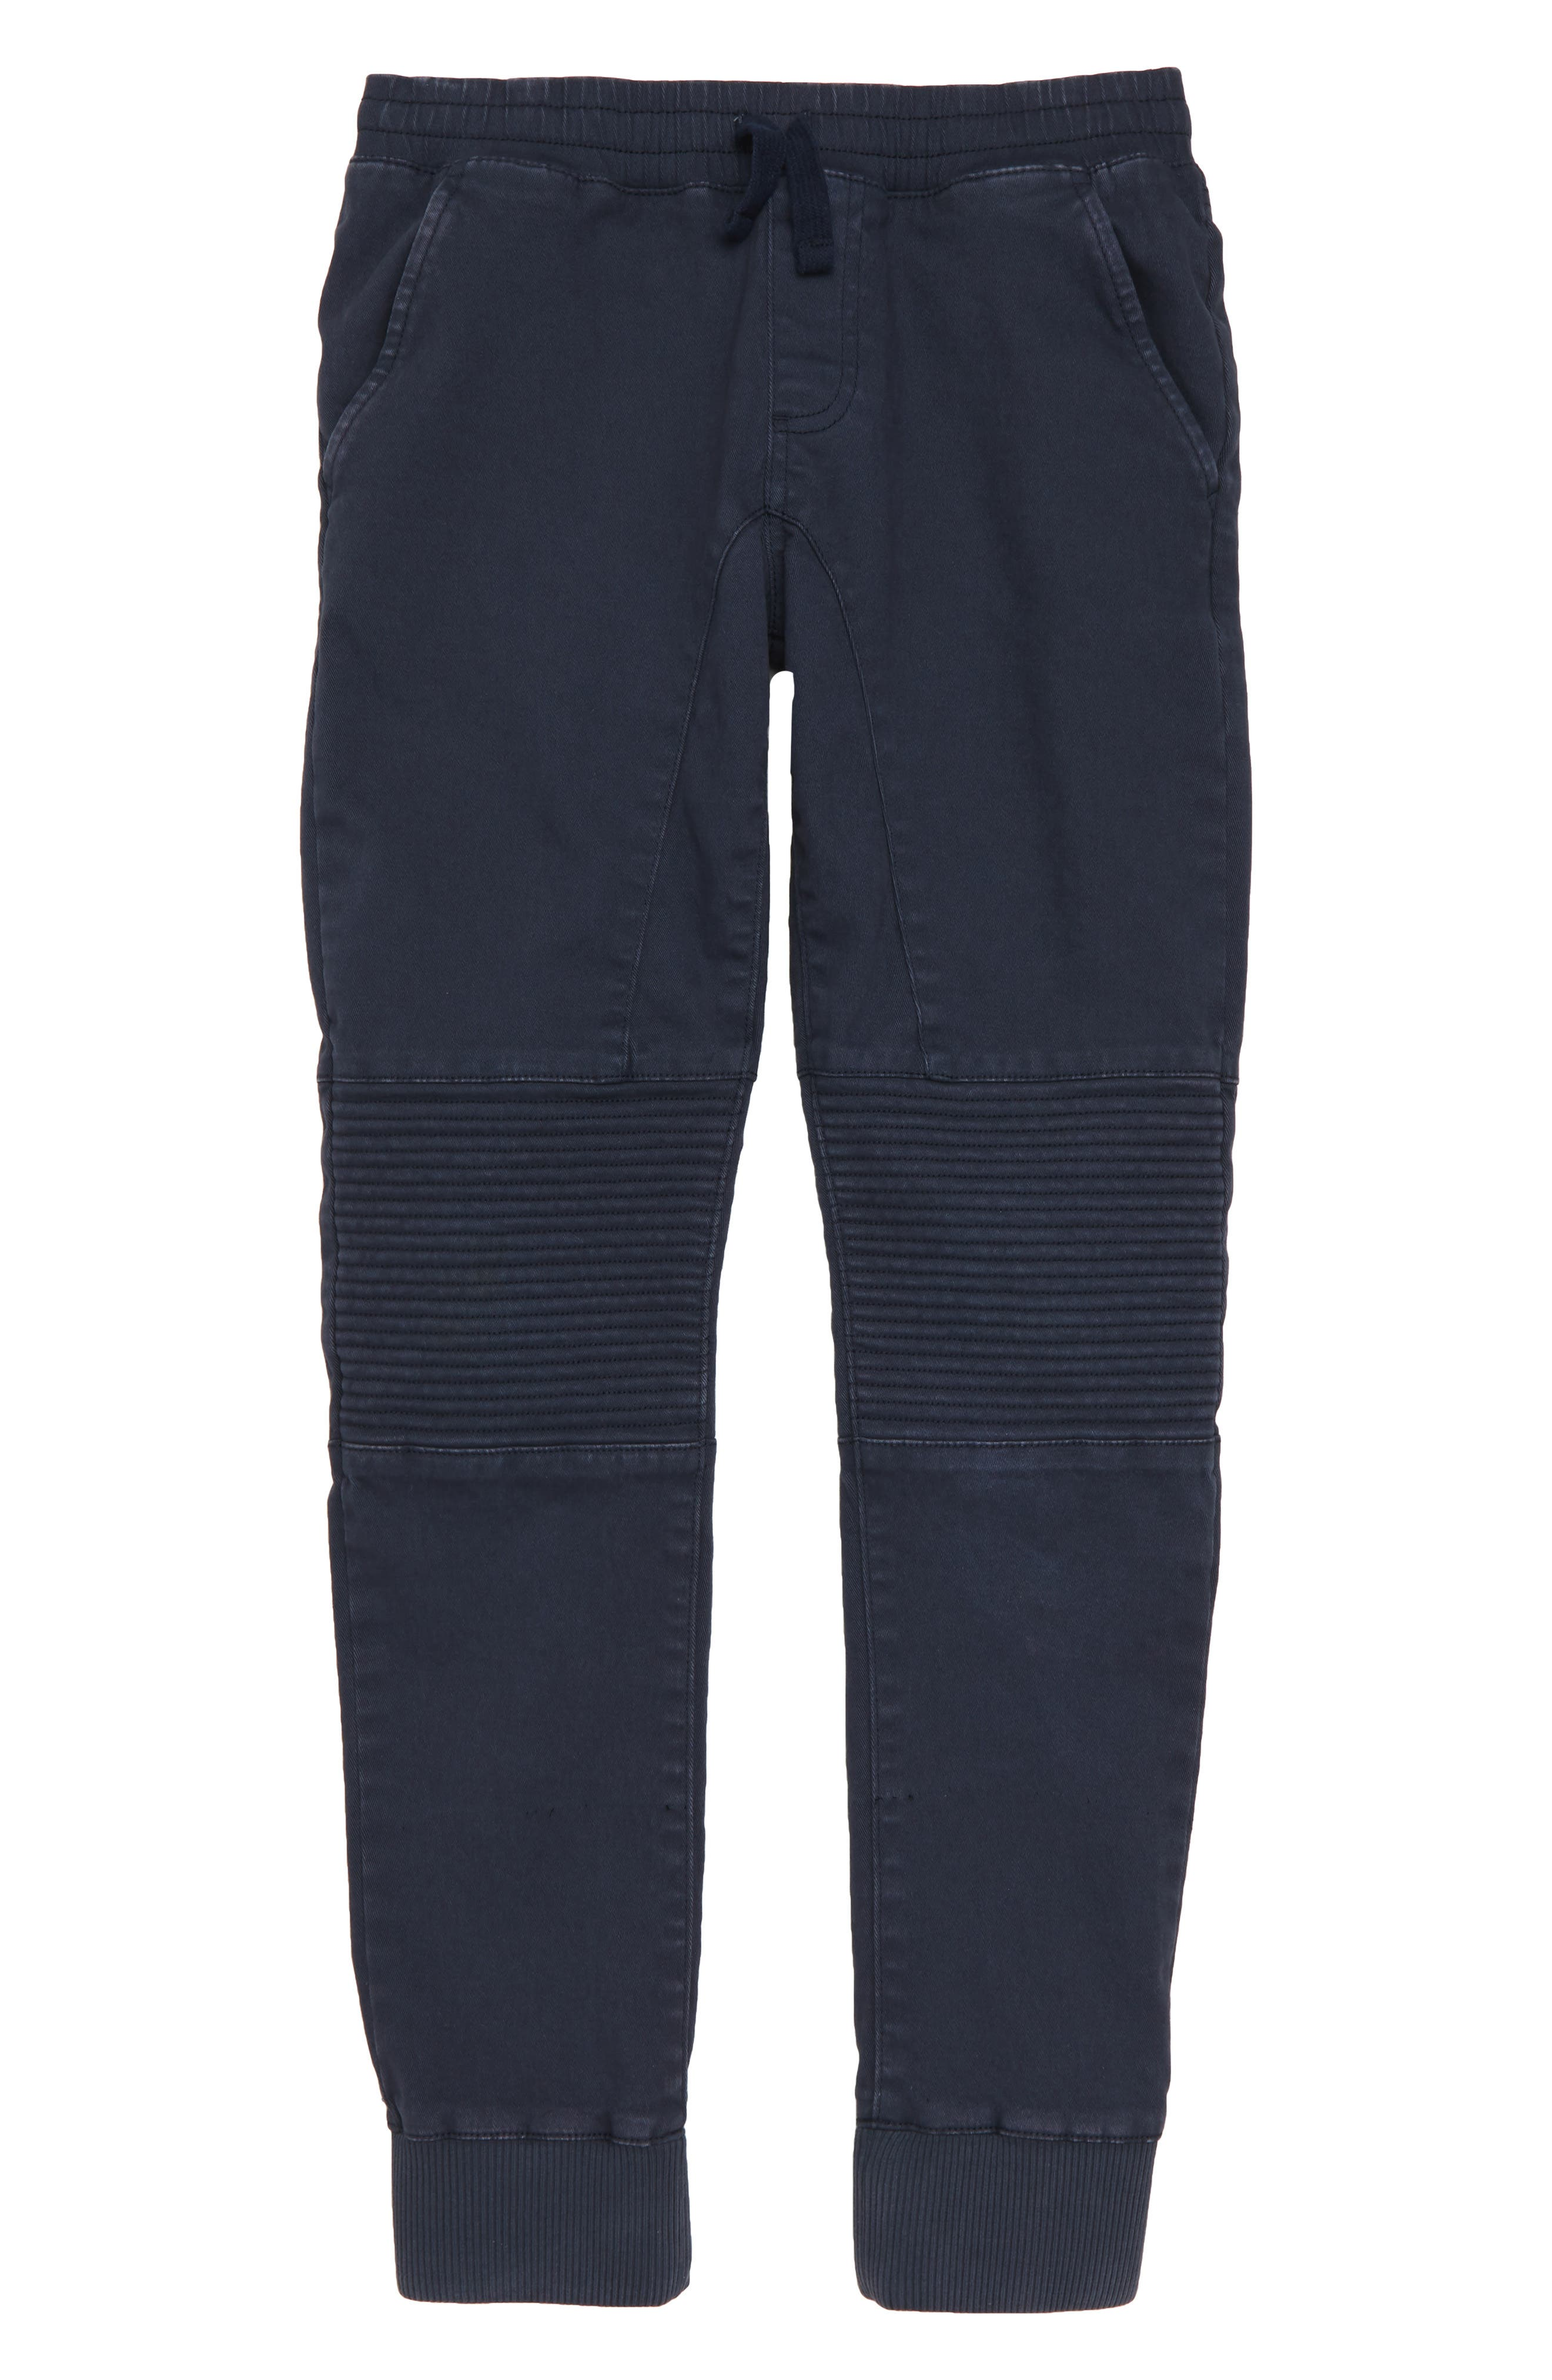 Moto Jogger Pants,                         Main,                         color, NAVY INDIA INK